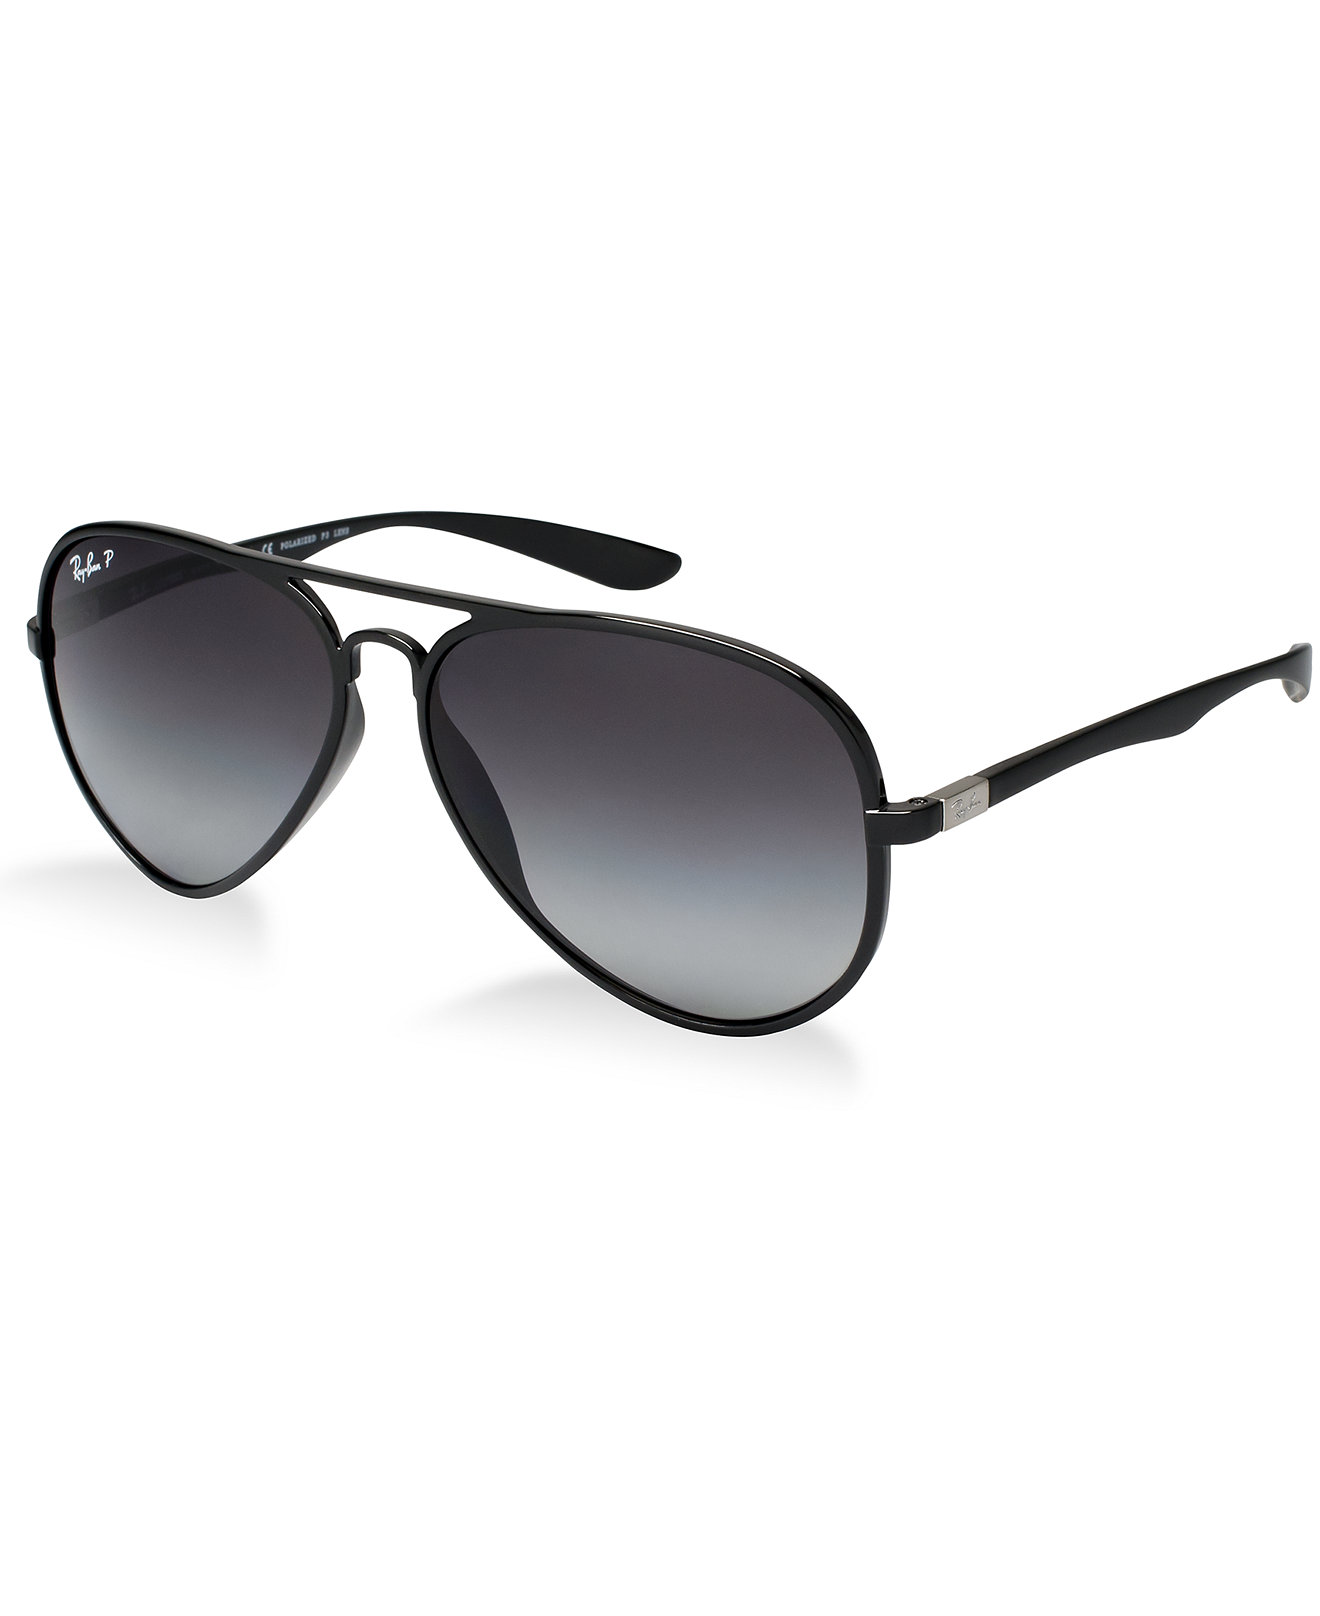 709a88e32 womens ray ban warrior sunglasses - Holly's Restaurant and Pub